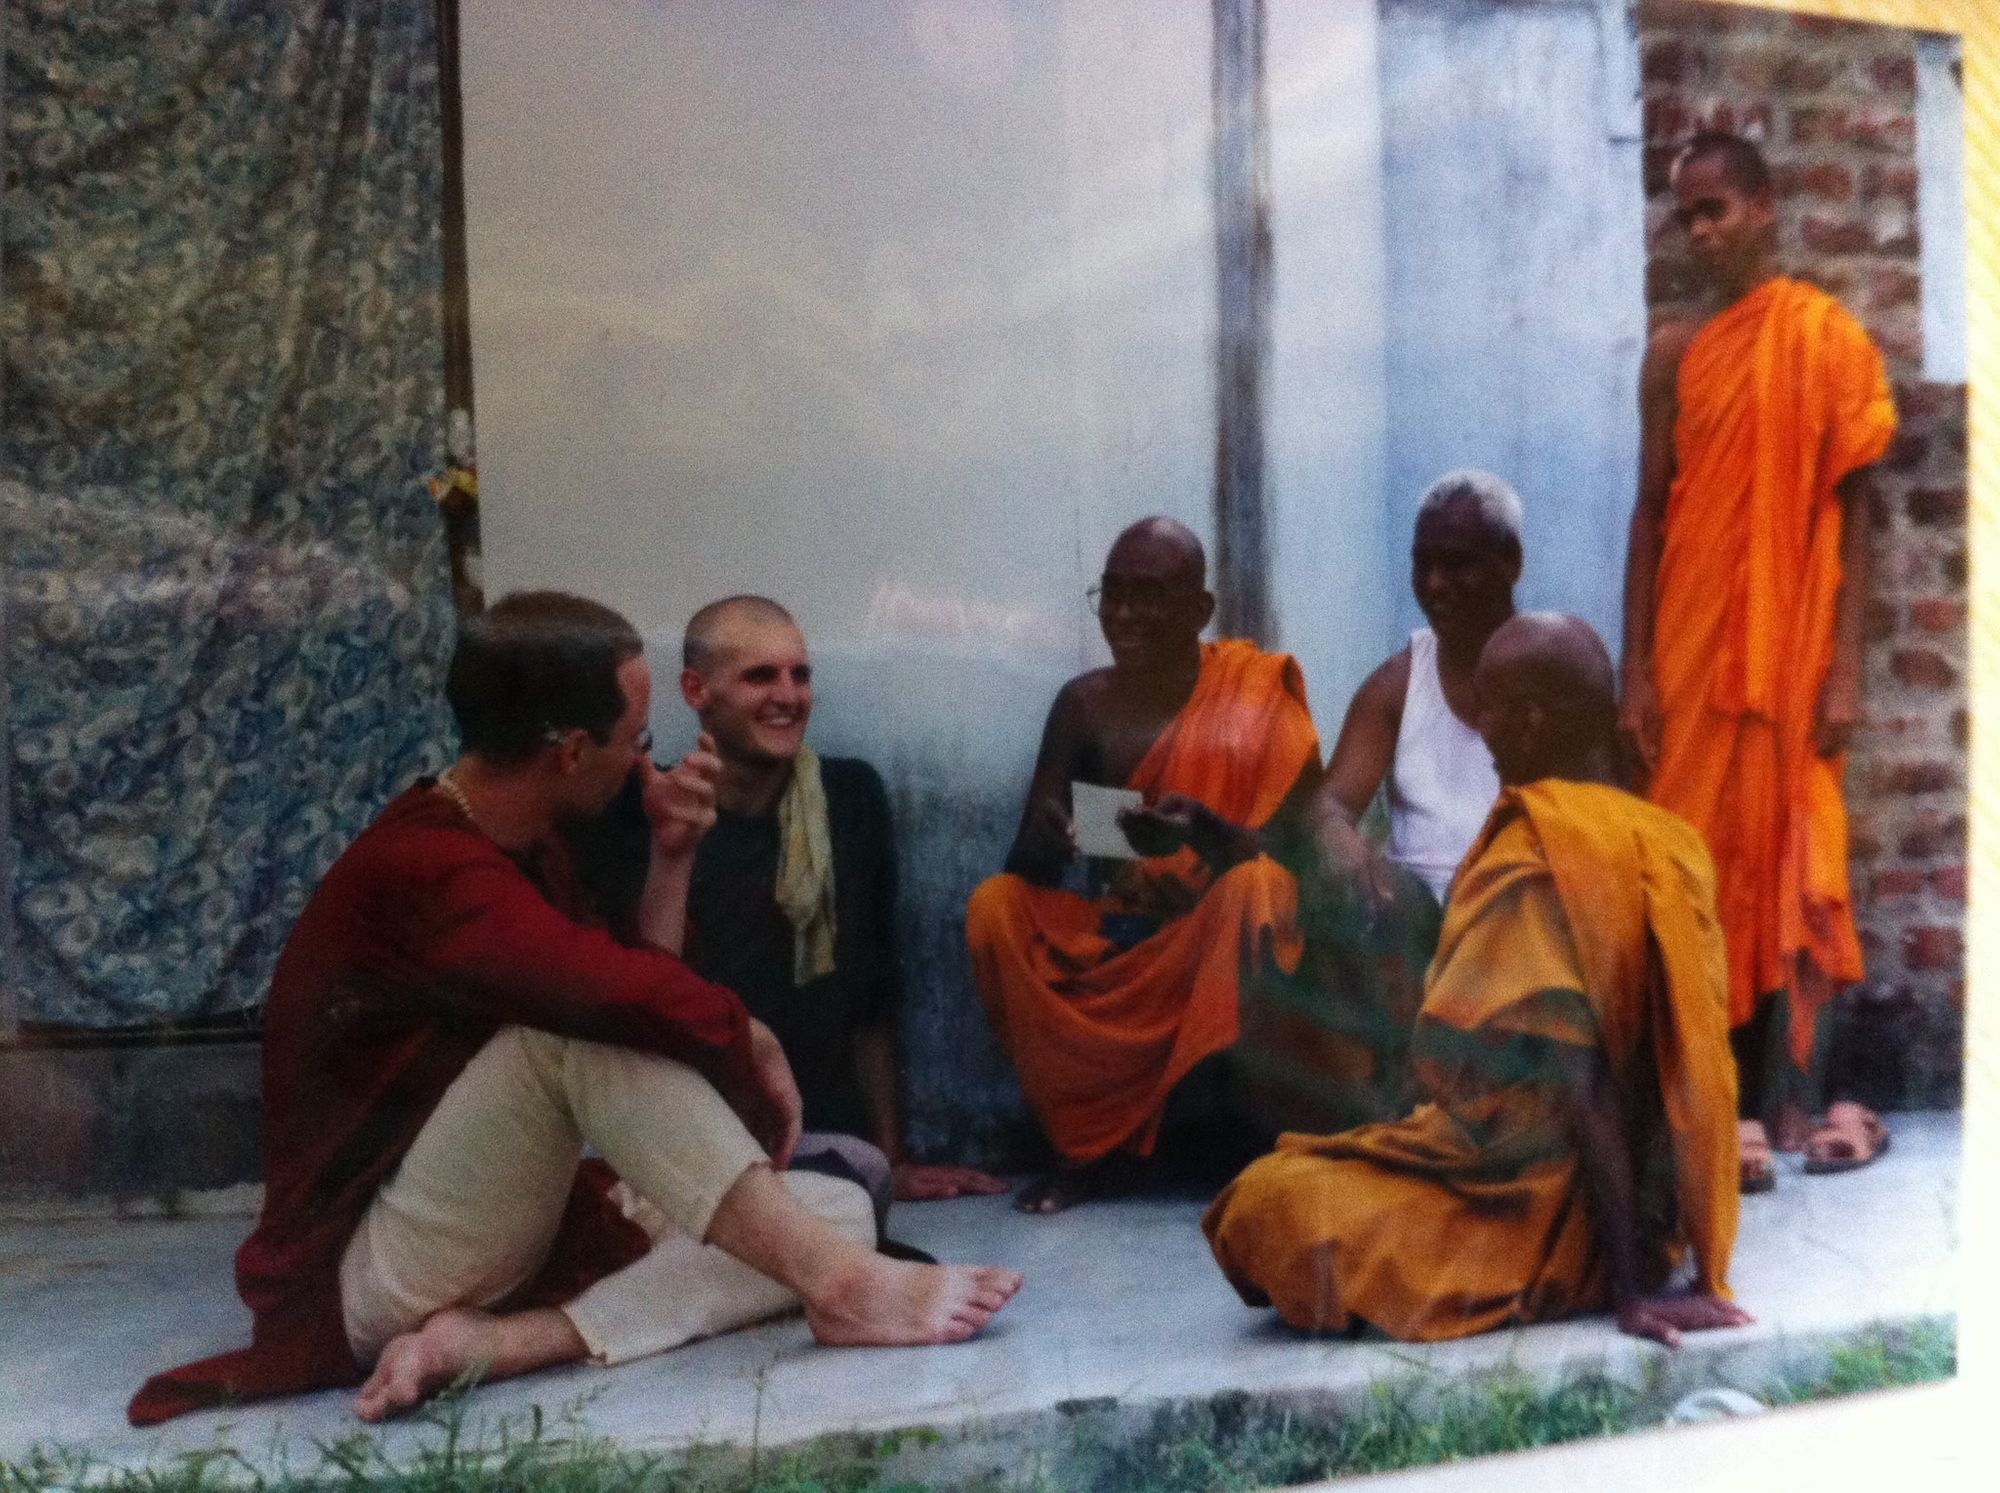 Image of the author with group of Buddhist monks.